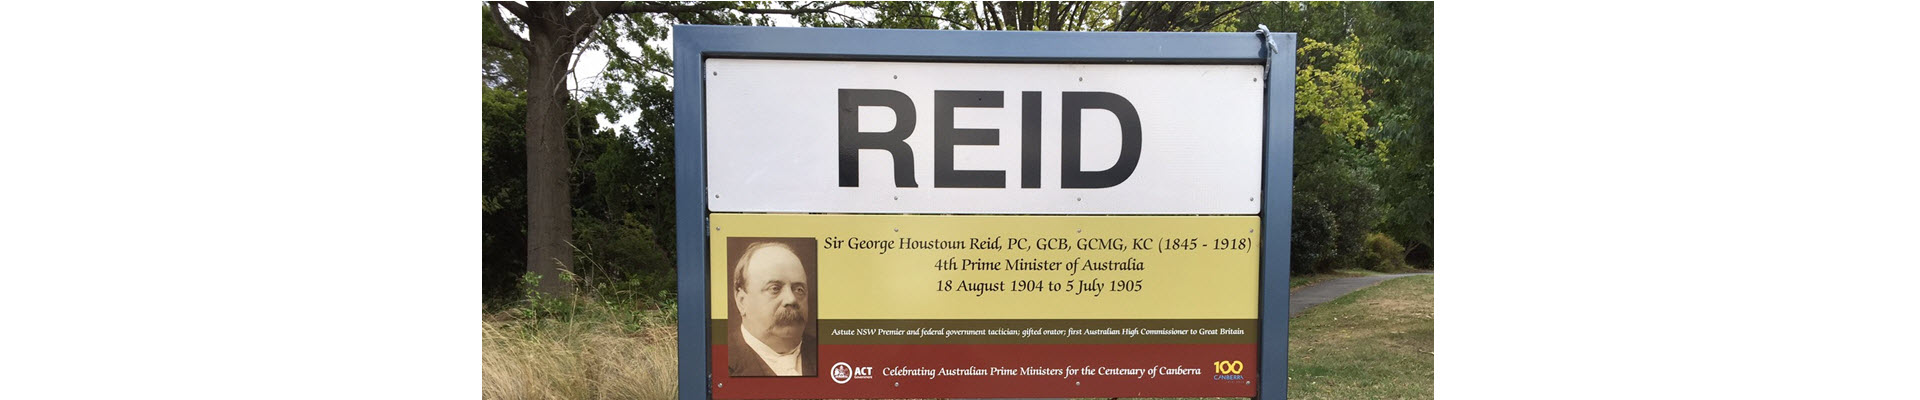 Reid Residents' Association